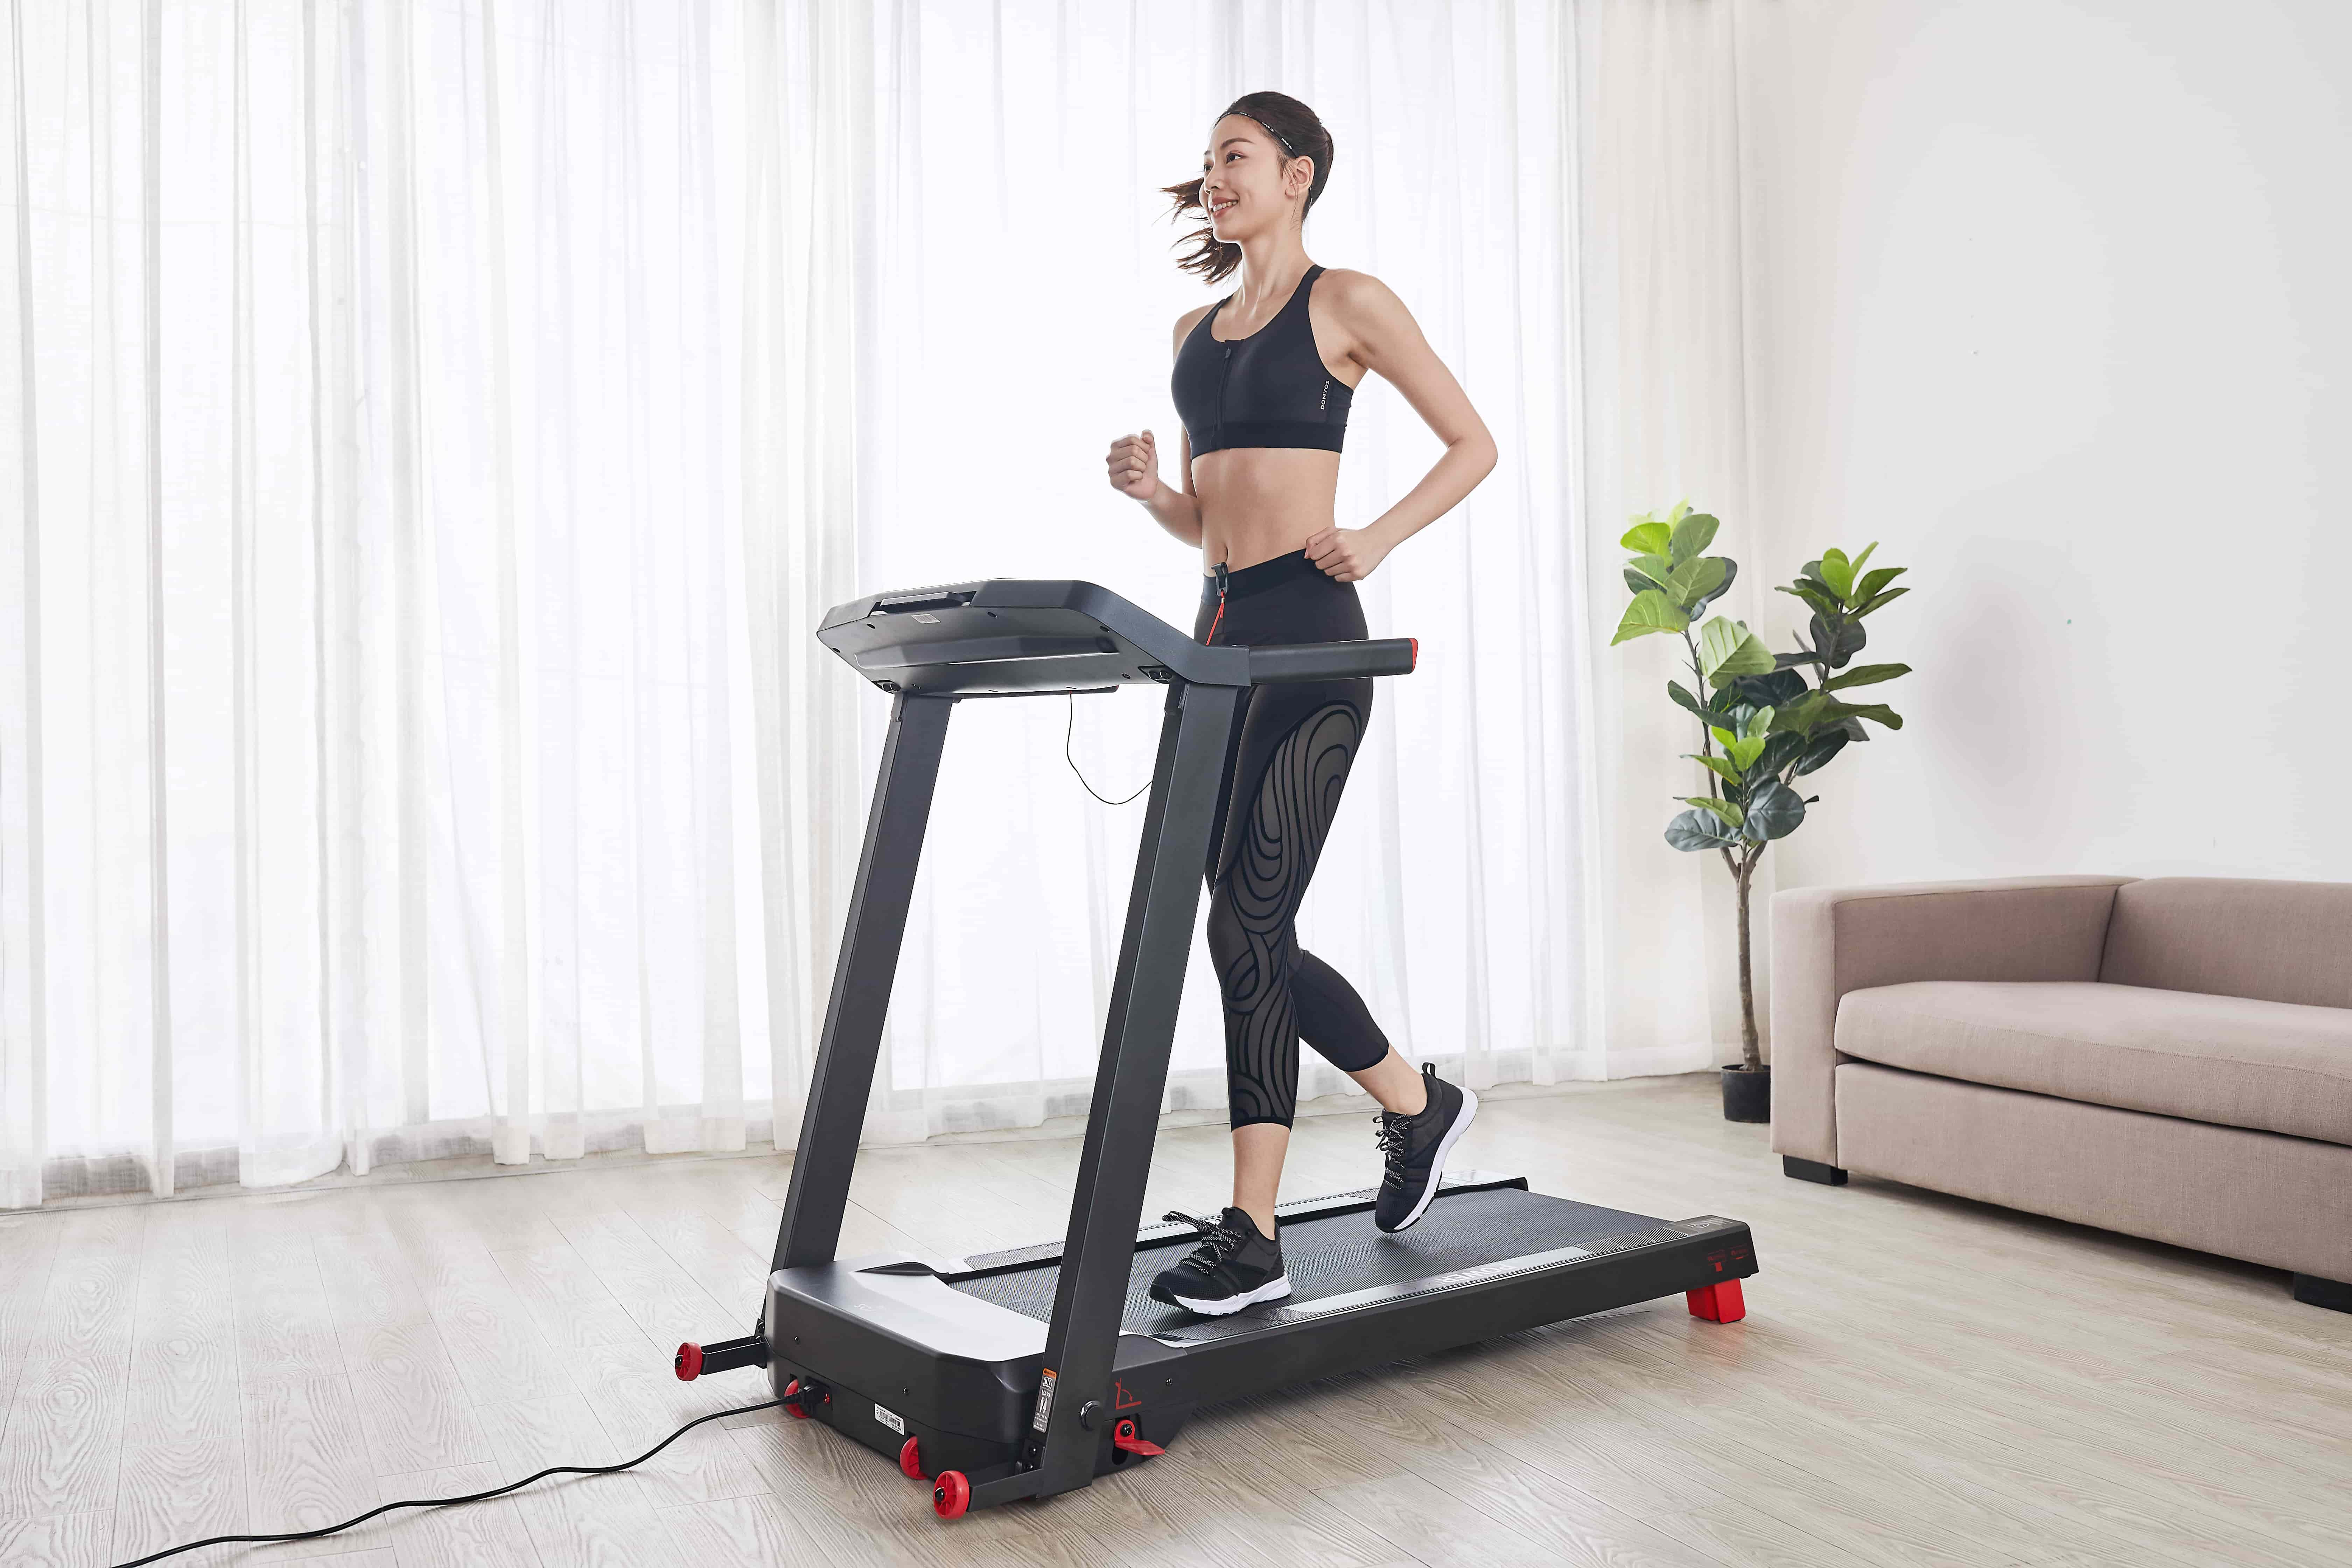 How to use a Treadmill for Beginners